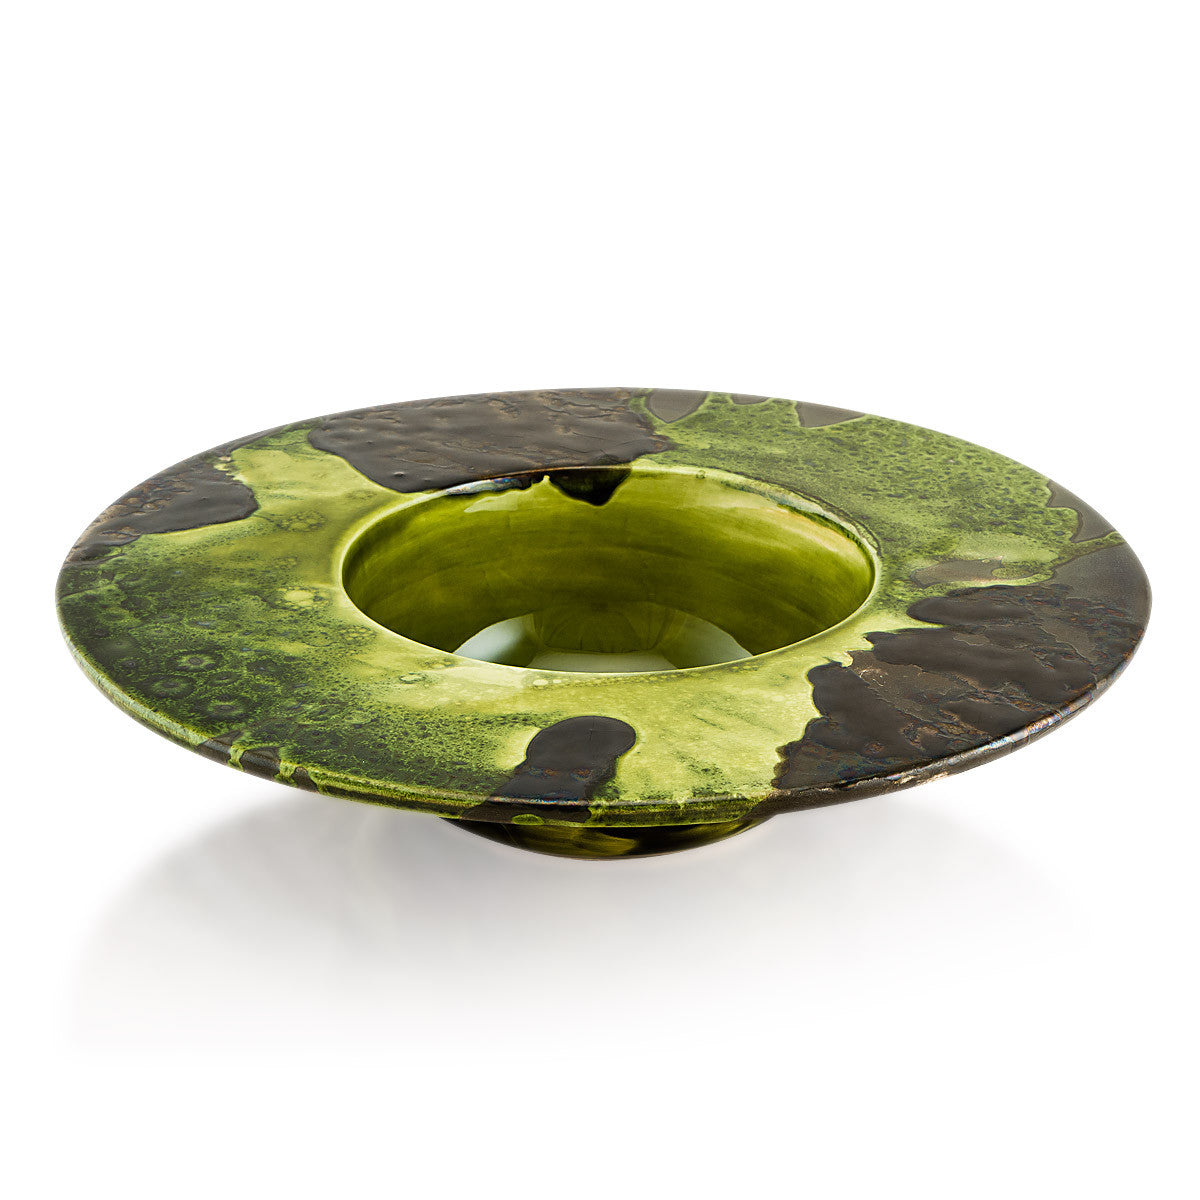 Ceramic modern bowl | Reactive glaze - Ceramics bowls-shades of green-valet tray-modeern design